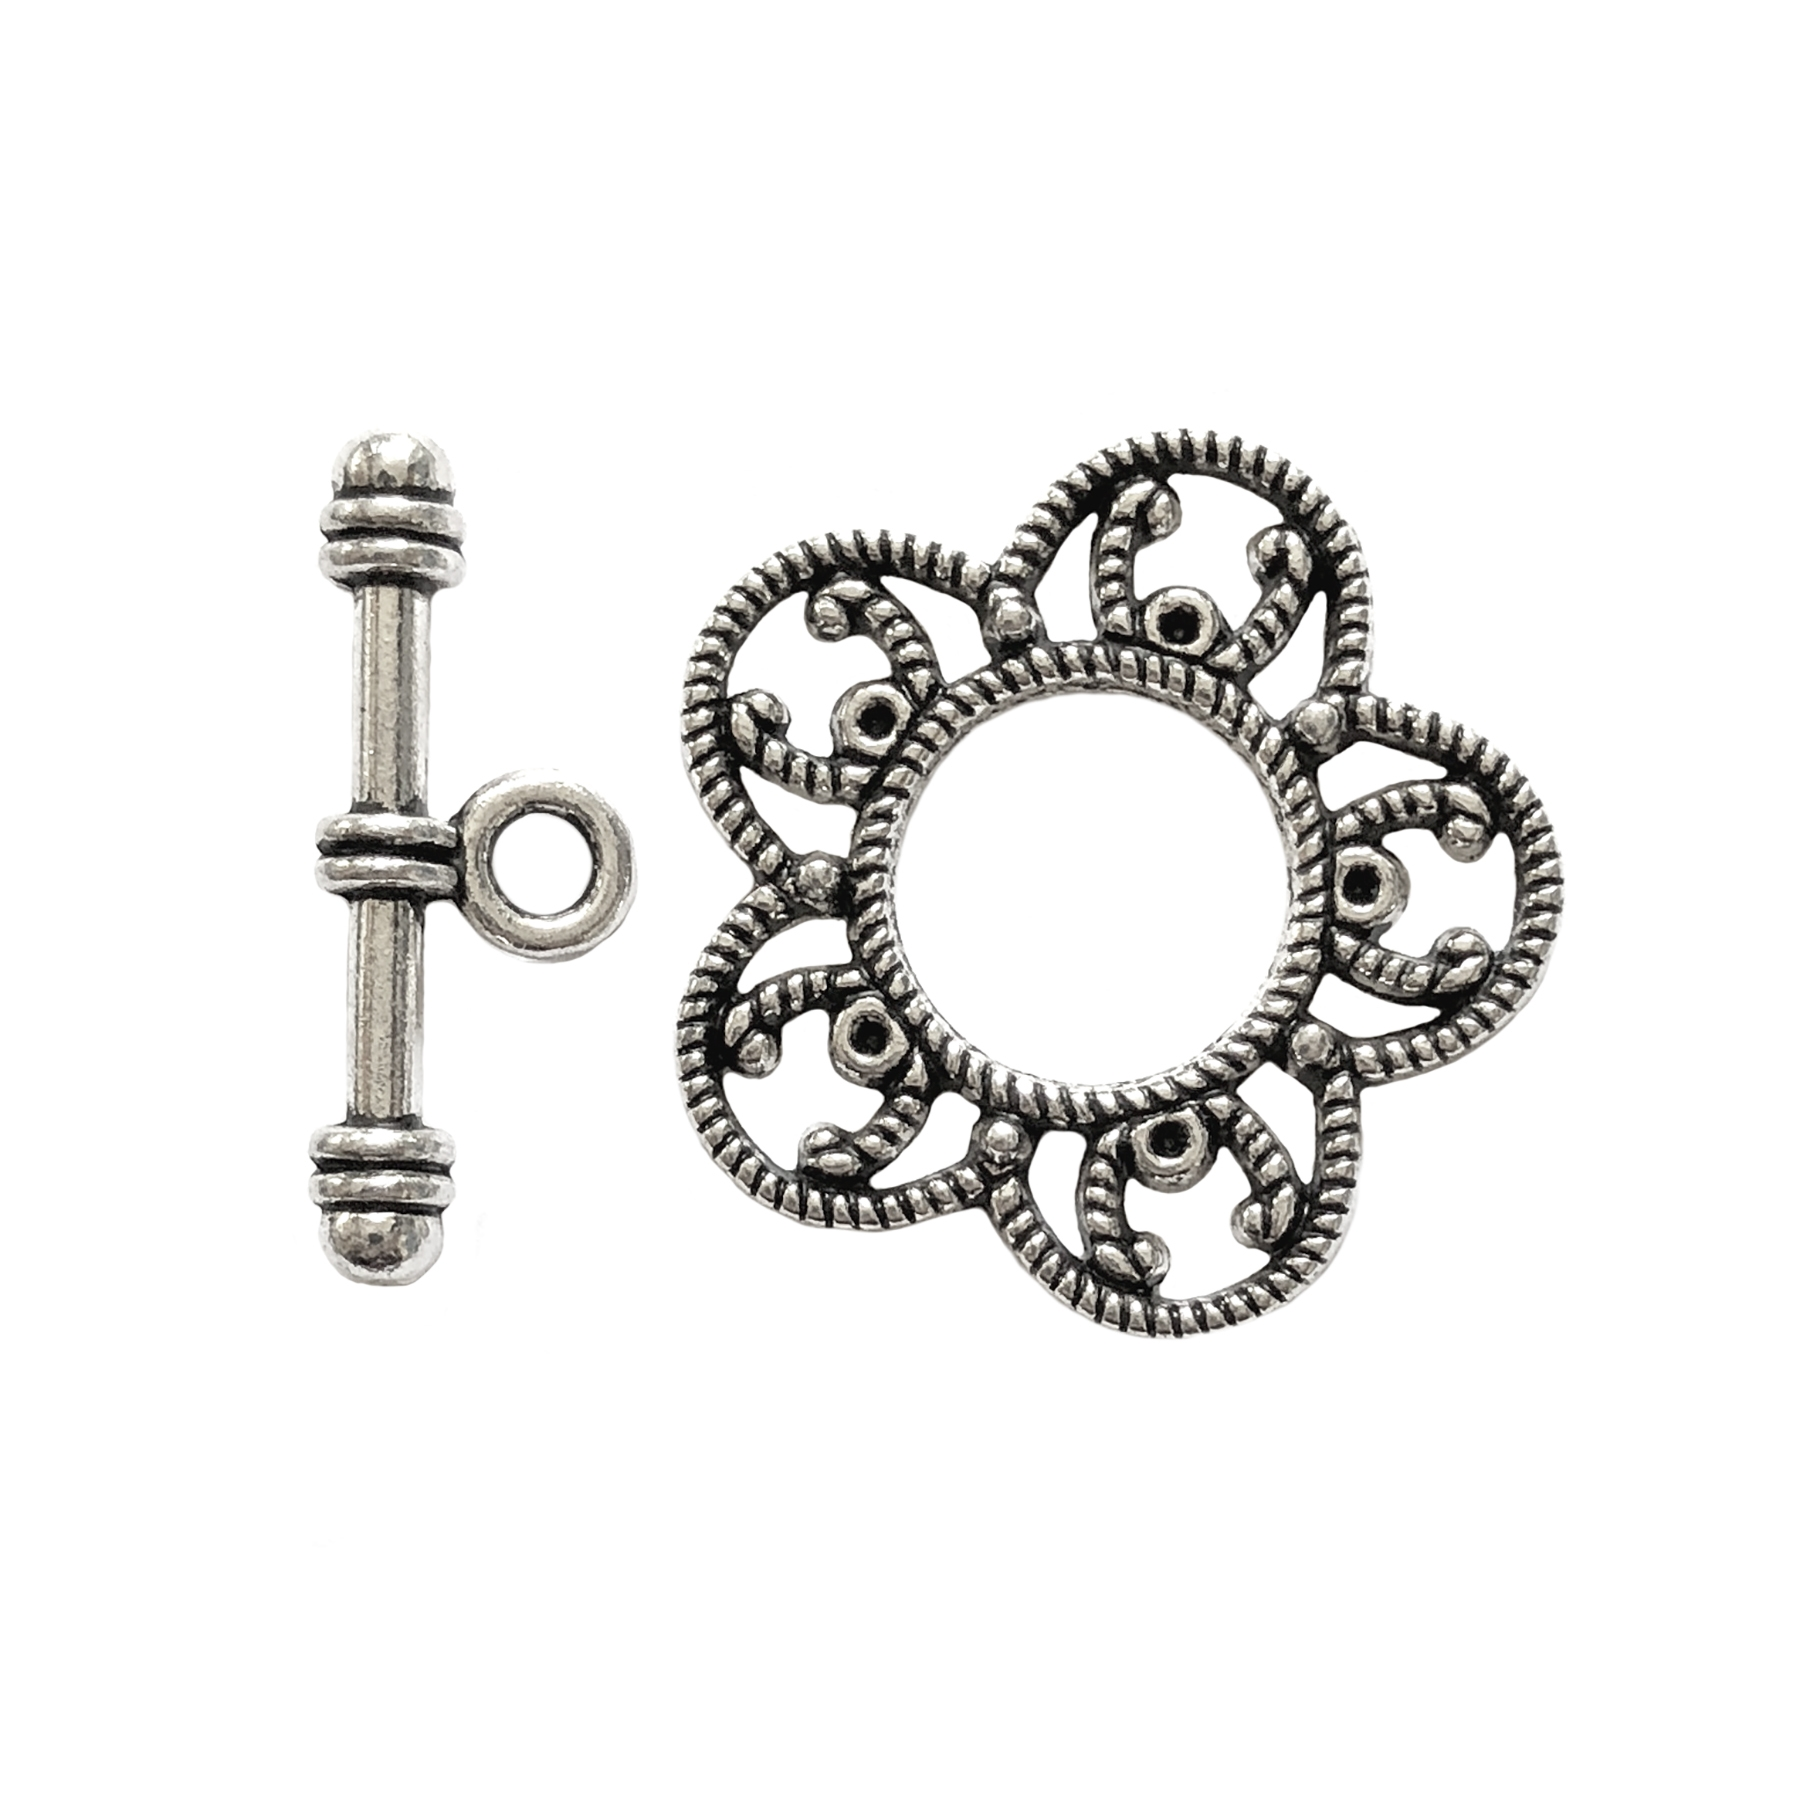 silver flower clasp, antique silver, alloy toggle clasp, flower design, flower clasp, silver flower clasp, jewelry making, clasp jewelry, jewelry supplies, vintage supplies, B'sue Boutiques, jewelry findings, silver clasp, 26mm, bar and flower, 09282